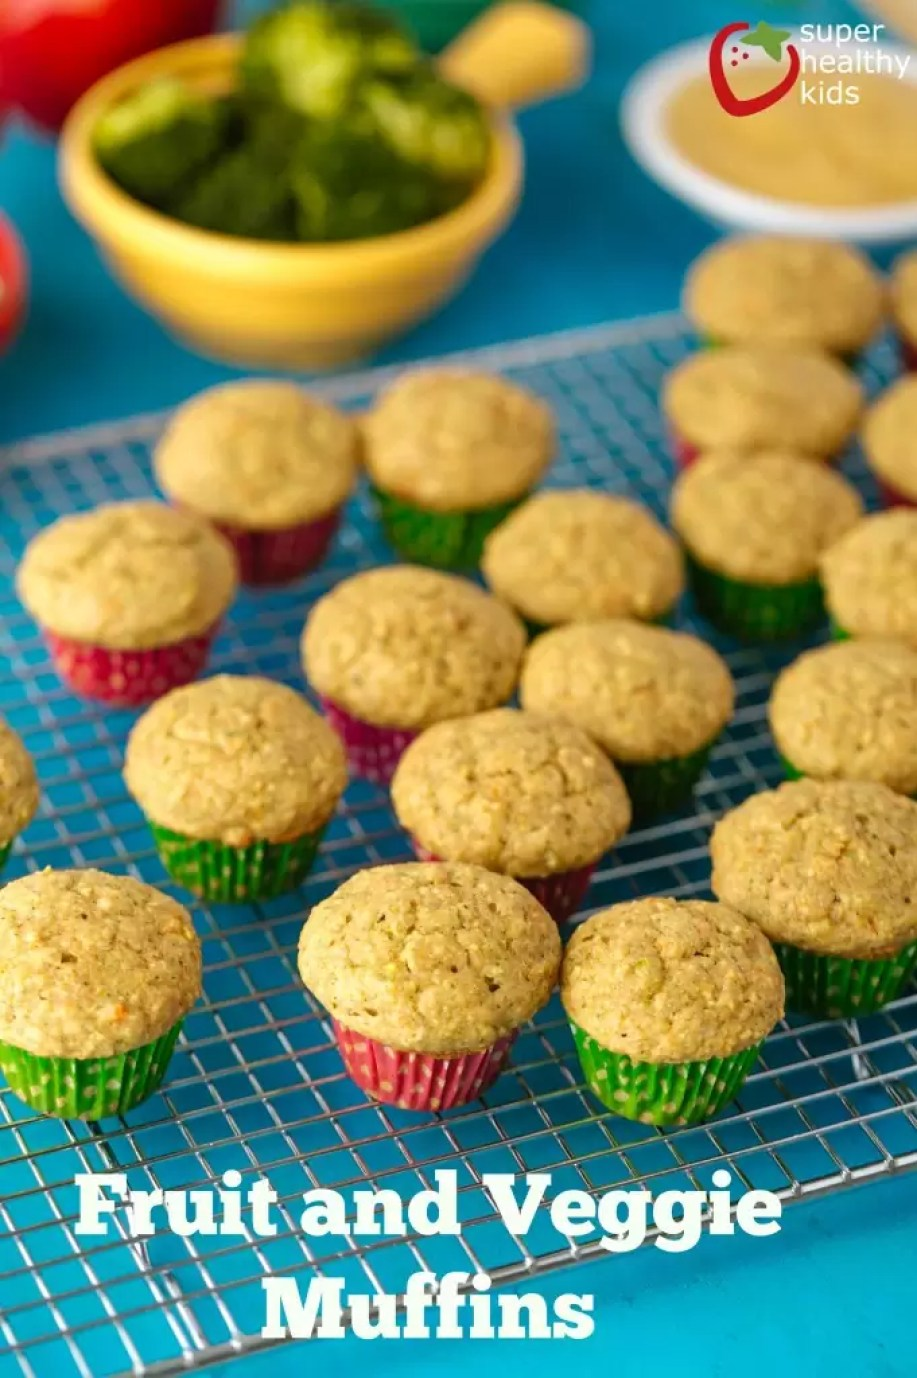 Power Packed Fruit & Veggie Muffins for Picky Eaters by Super Healthy Kids